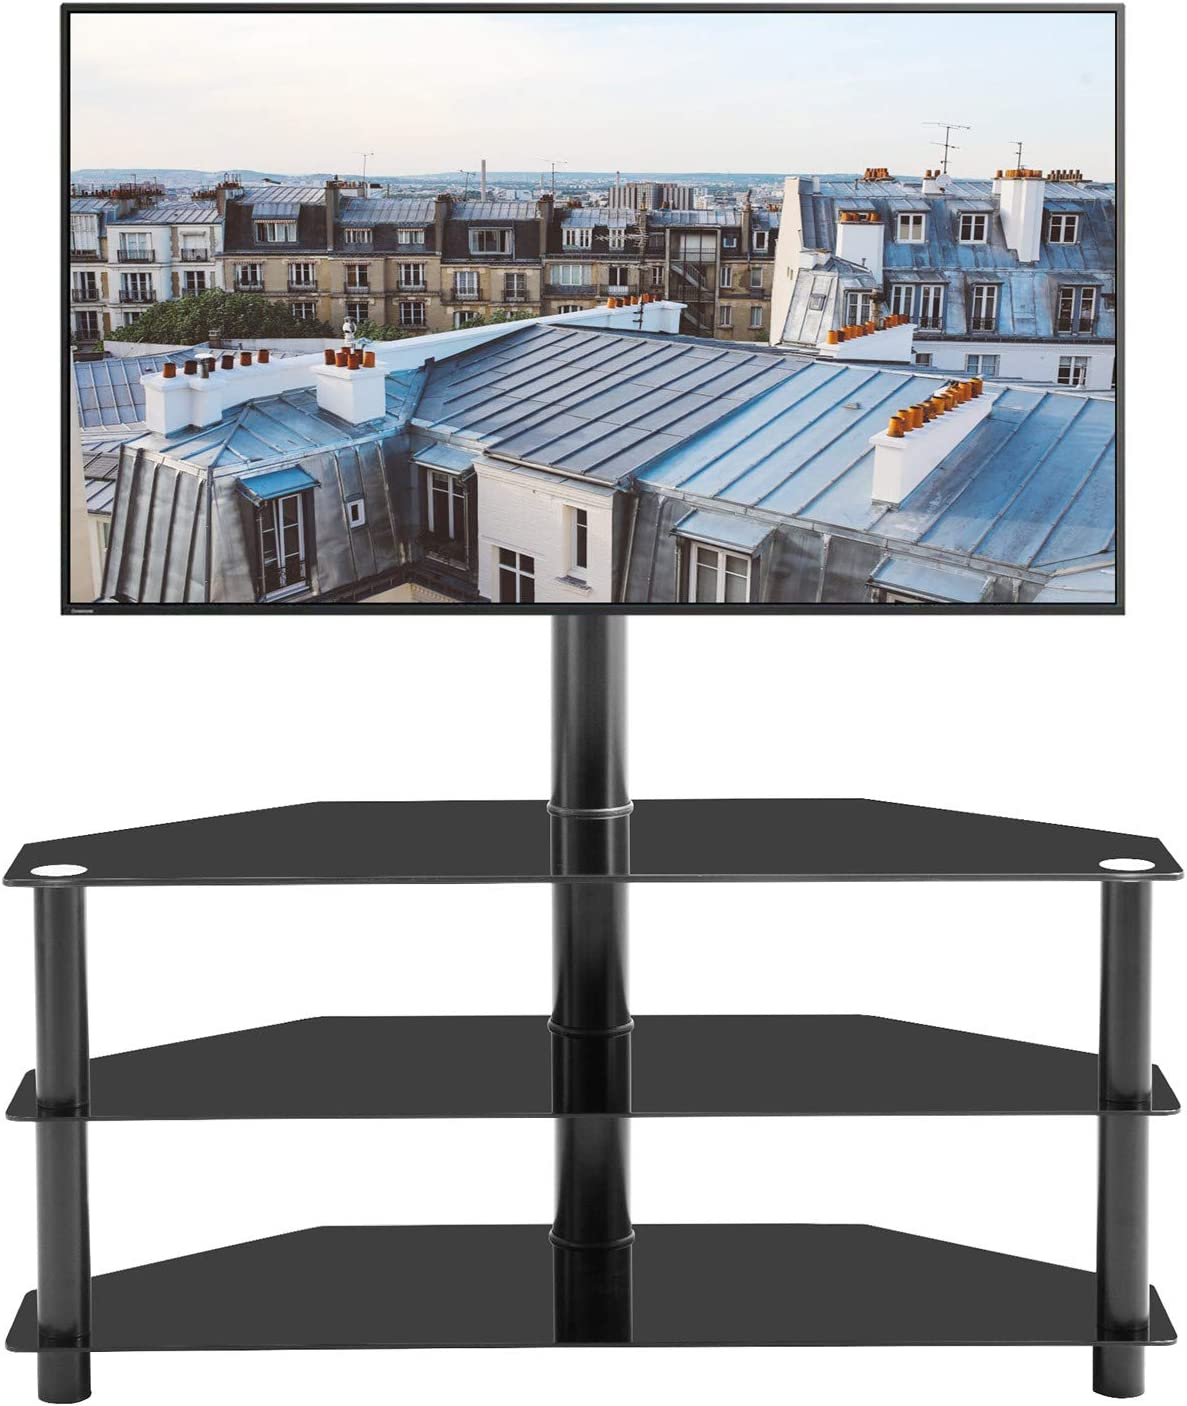 GHEDA 3 Tier Glass TV Stand with Metal Frame Swivel Mount Height Adjustable for 32 37 42 47 50 55 65 inch Plasma Flat or Curved Screen Television, TVs Bracket with 3 layers Media Storage for Xbox, PS4